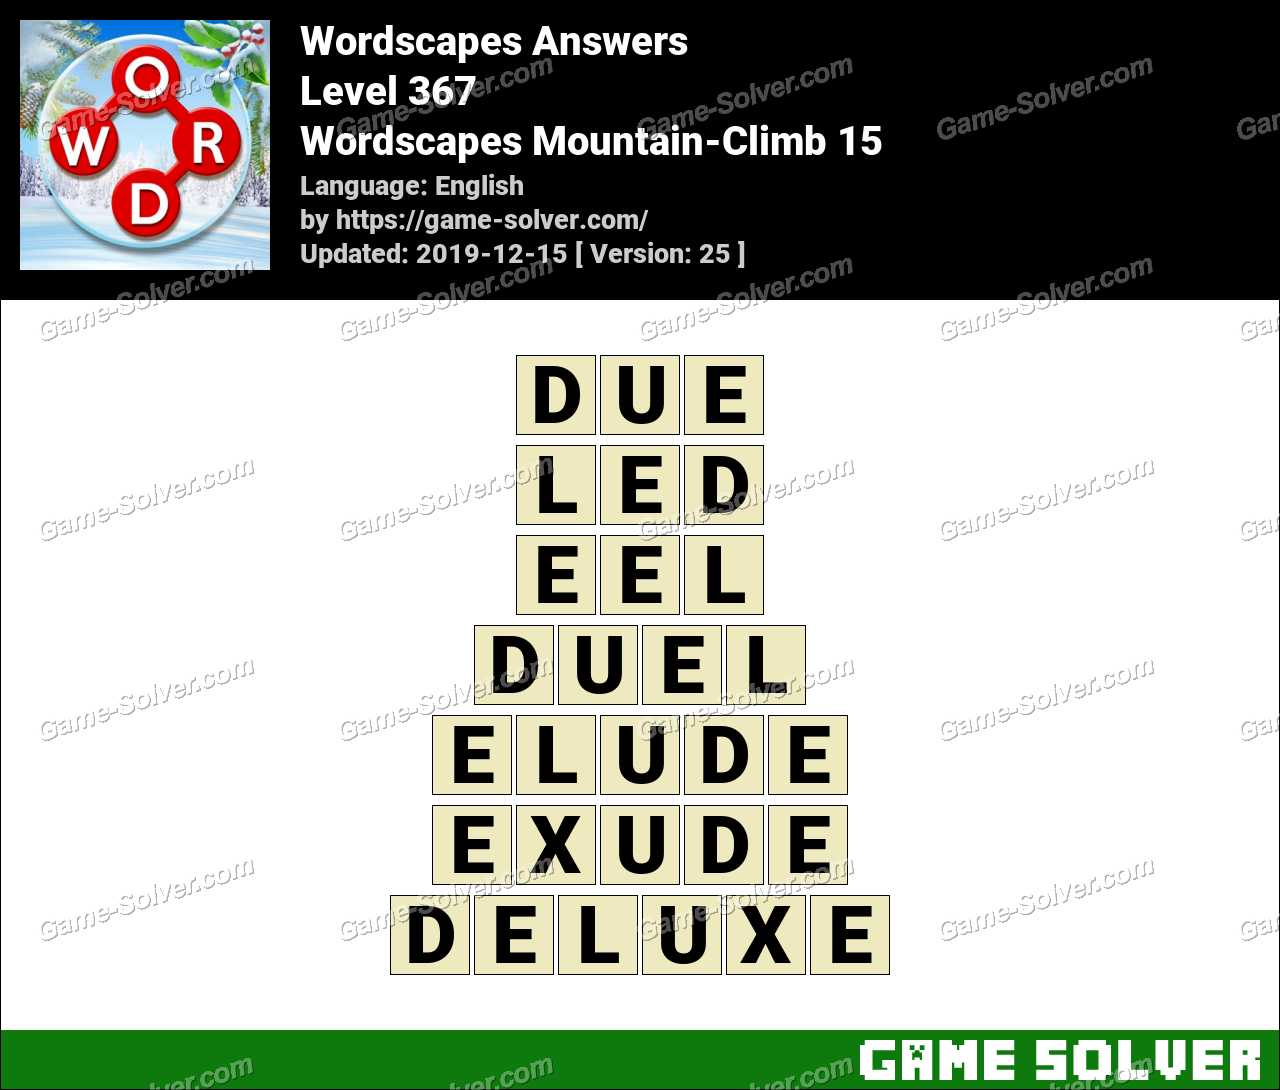 Wordscapes Mountain-Climb 15 Answers